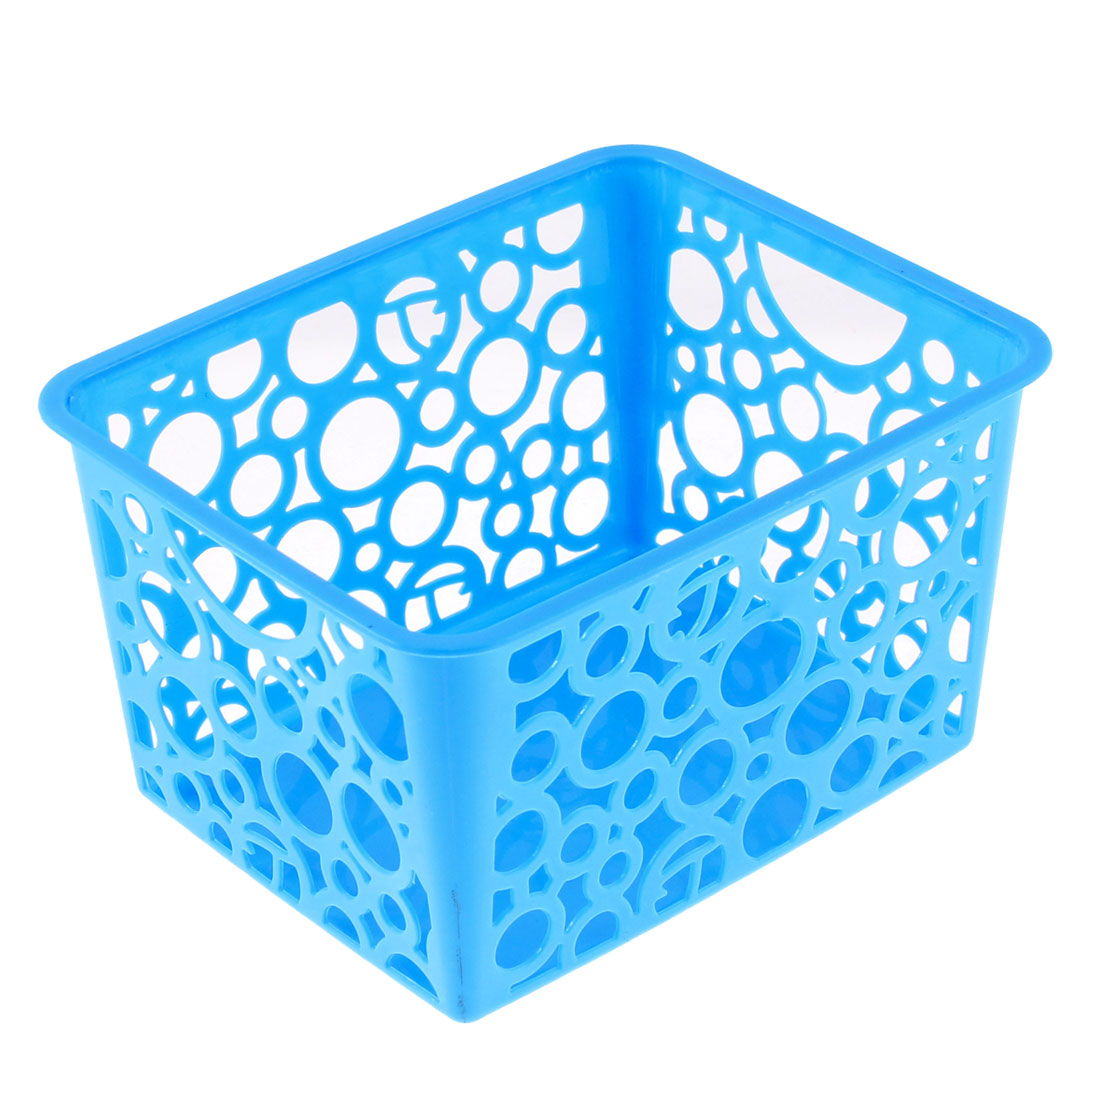 Home Plastic Hollow Out Circle Design Storage Basket 144mmx114mm Blue